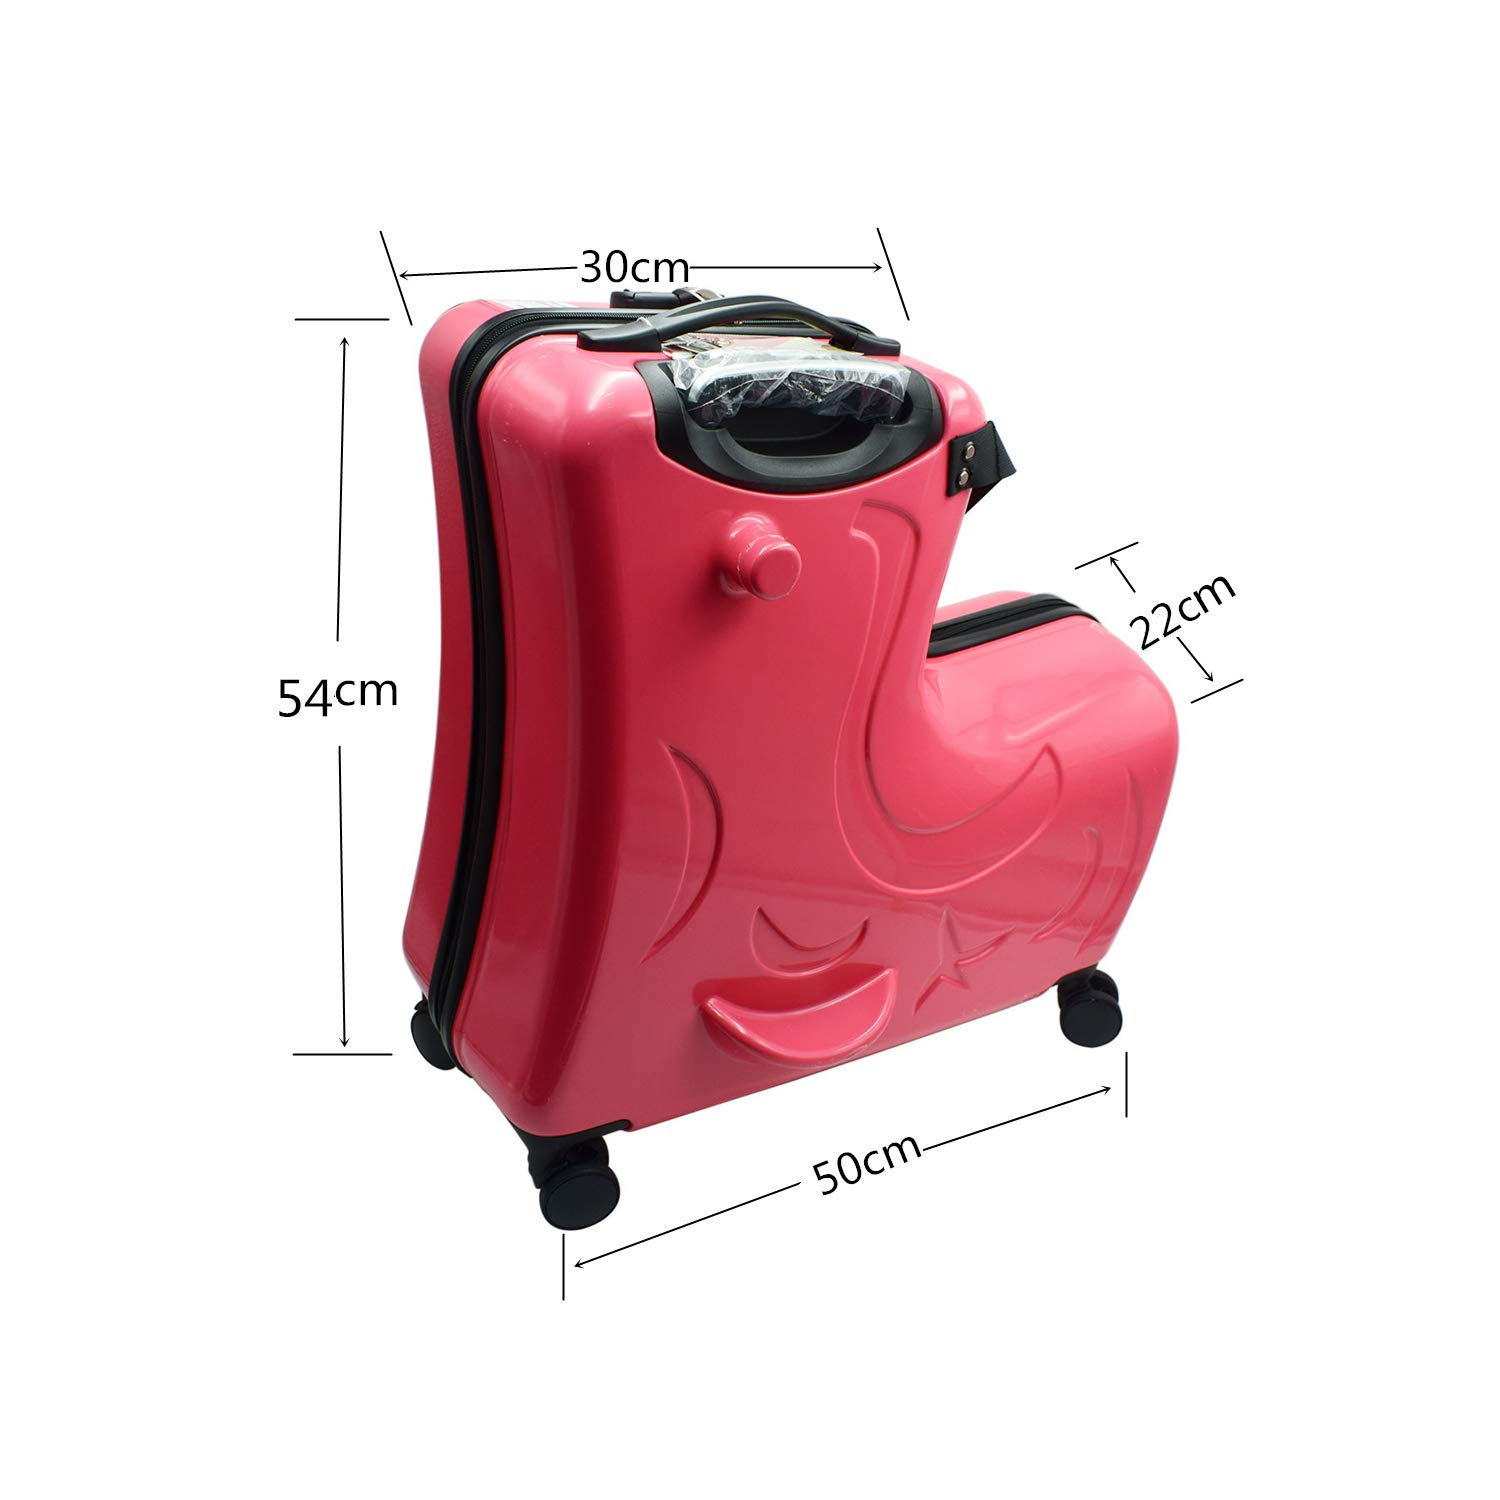 a3ee0201d8ca Portable Boys and Girls Children Ride on a Trojan Suitcase and for Parents  to Rest Assured Kids Luggage Sets - Luggage and Travel Accessories